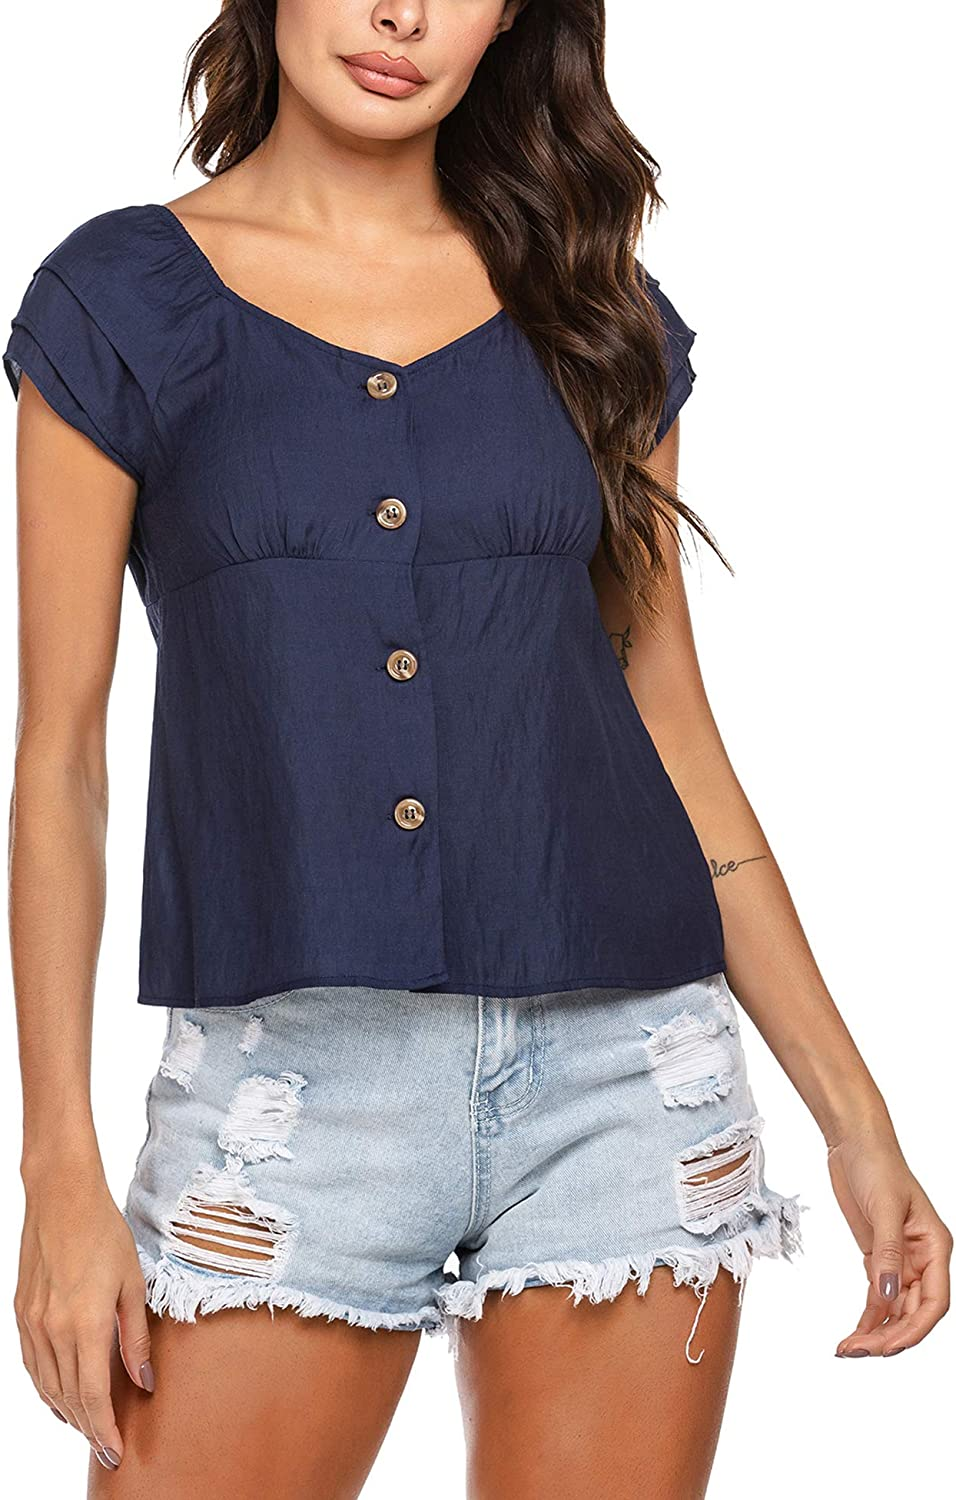 Chigant Women's Ruffle Short Sleeve Shirts Square Neck Button Down Tops Summer Casual Top Blouse